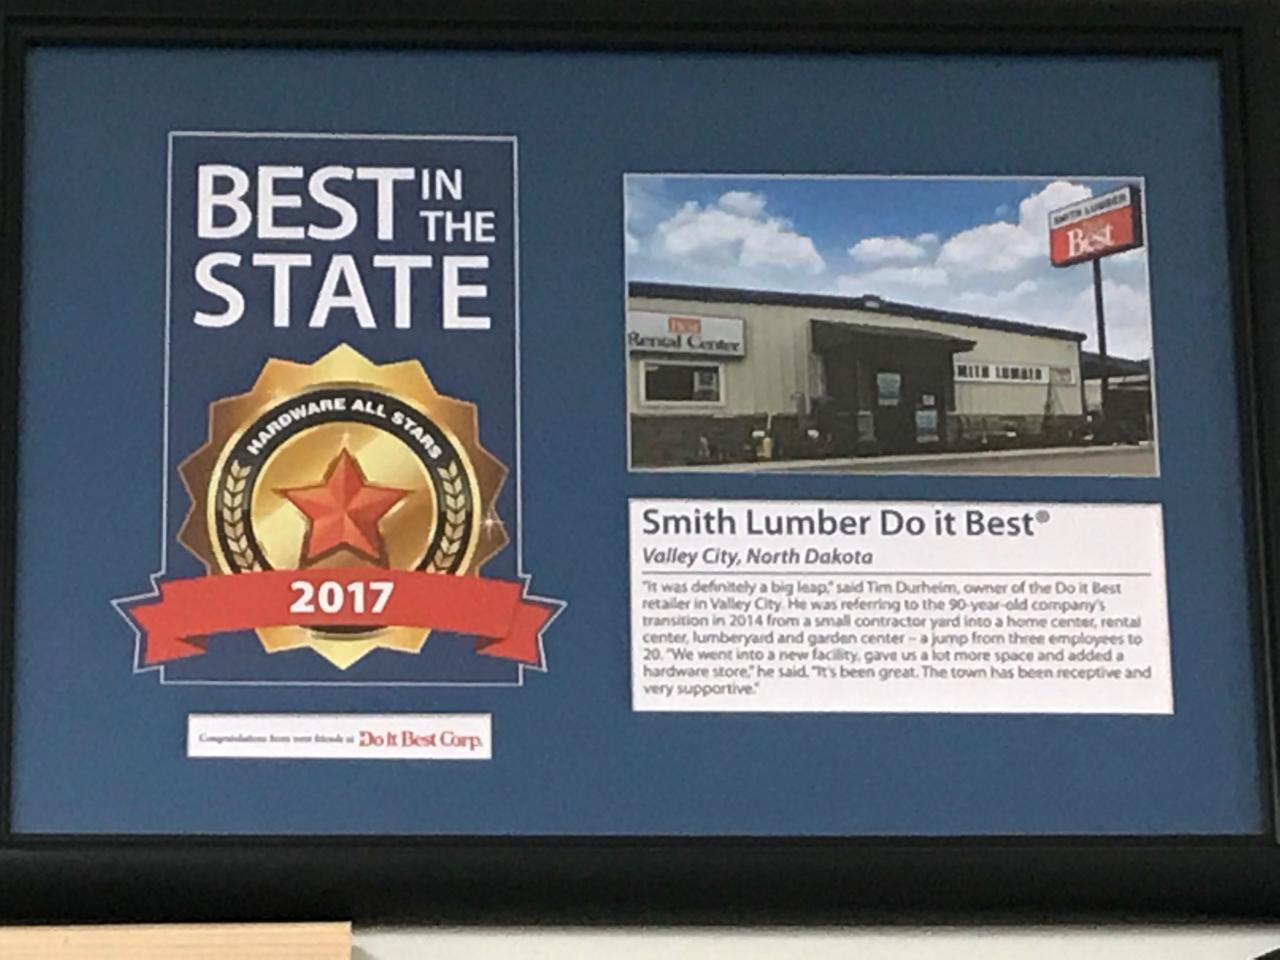 Smith Lumber - Best in State